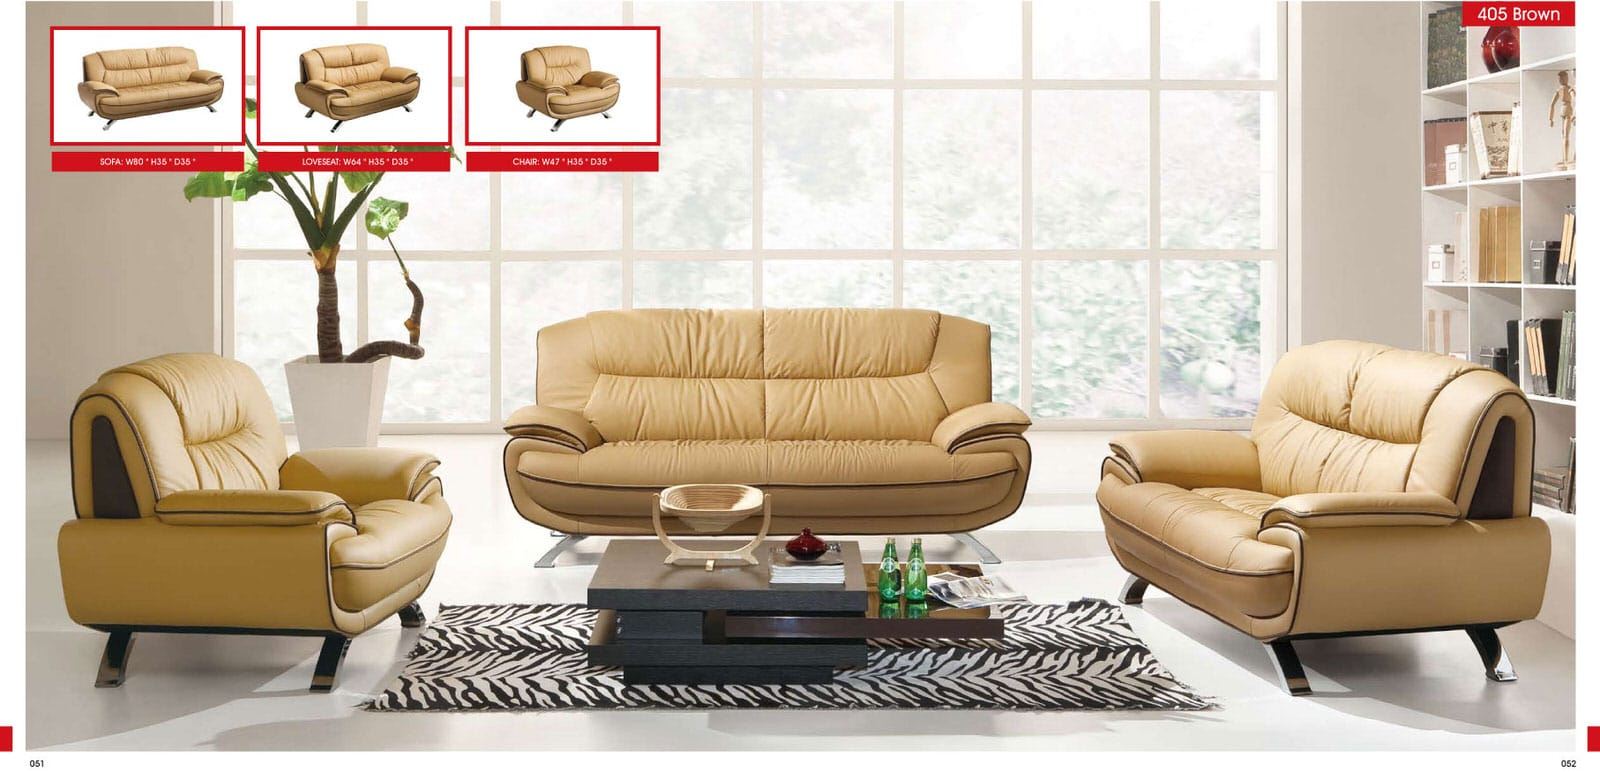 405 brown leather sofa set by esf for Couch for drawing room